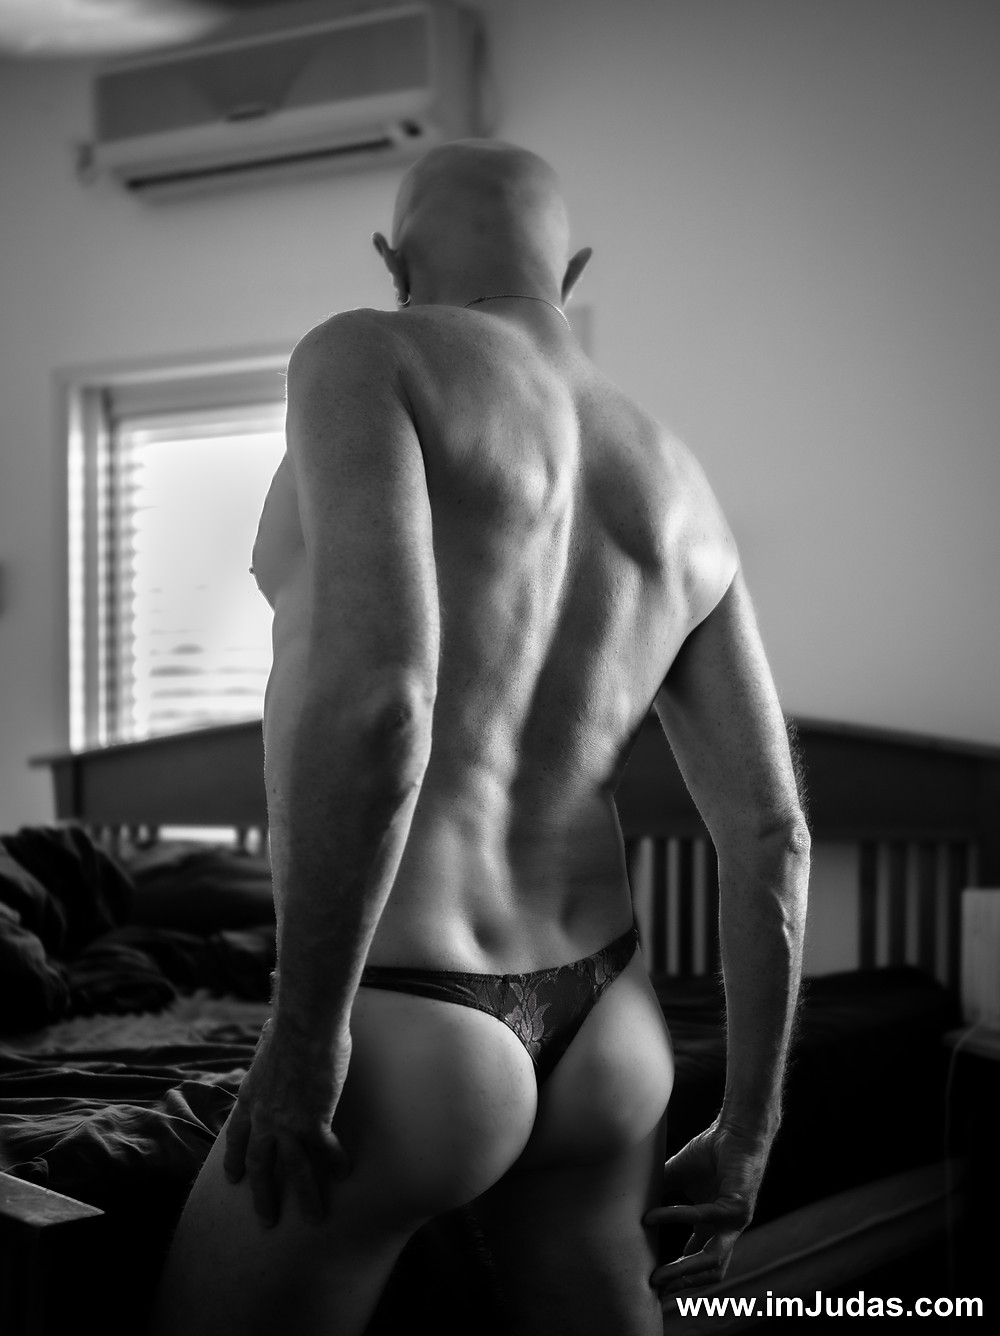 Gidi didn't notice my thong; he nearly tore it apart when undressing me.